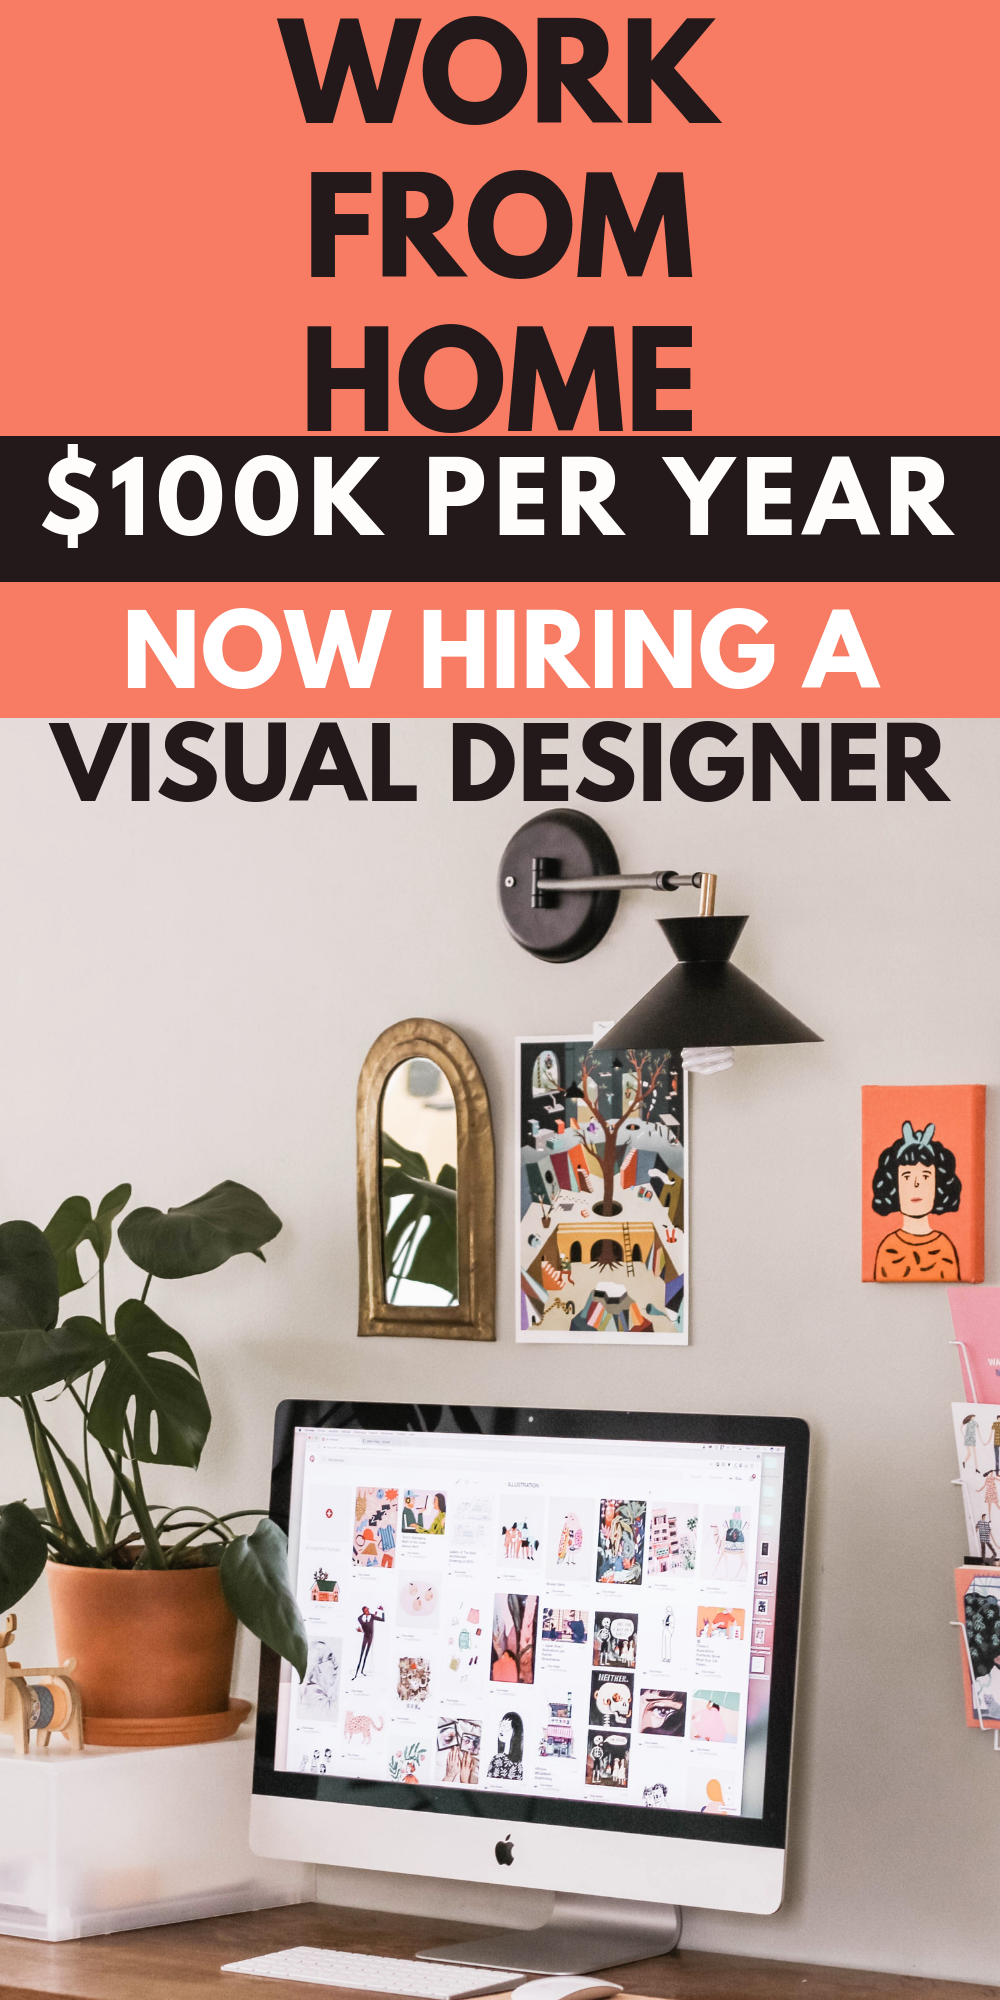 $70 - $100k per year We're recruiting a creative Visual Designer to help own all our digital and offline marketing efforts. #workfromhome #remotework #makemoneonline #designer